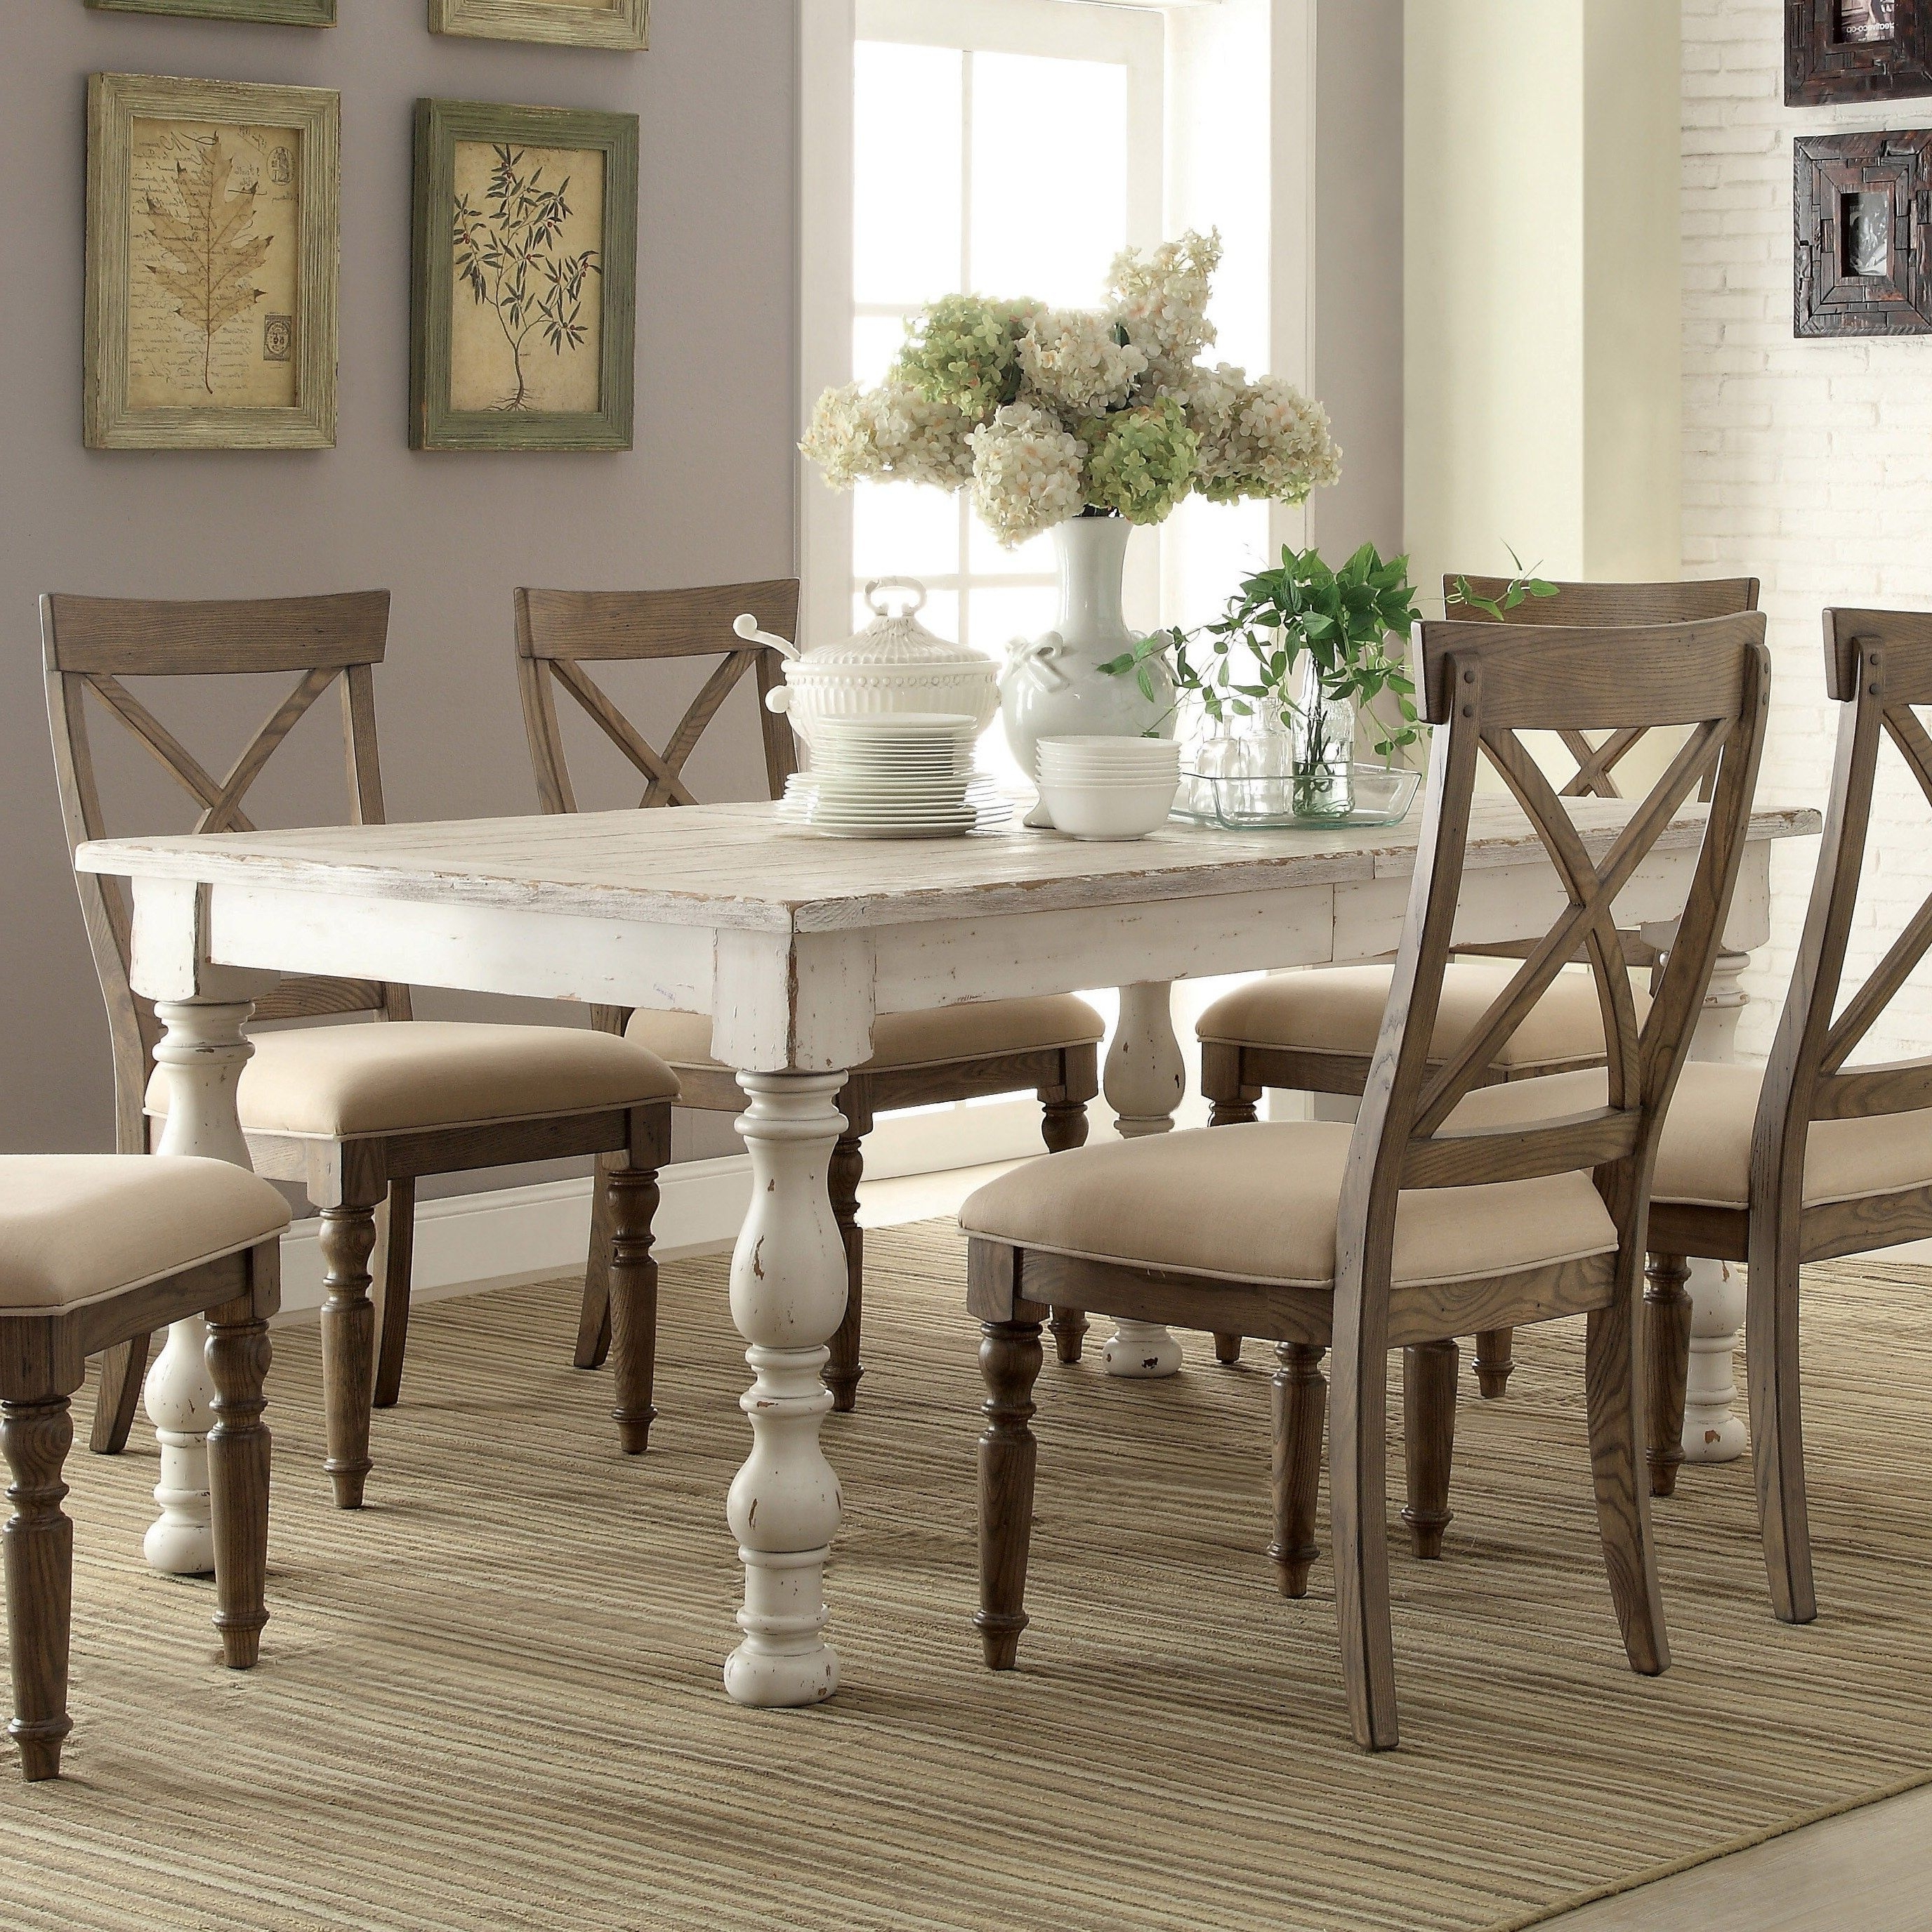 White Dining Tables Sets In Favorite Aberdeen Wood Rectangular Dining Table Only In Weathered Worn White (View 3 of 25)